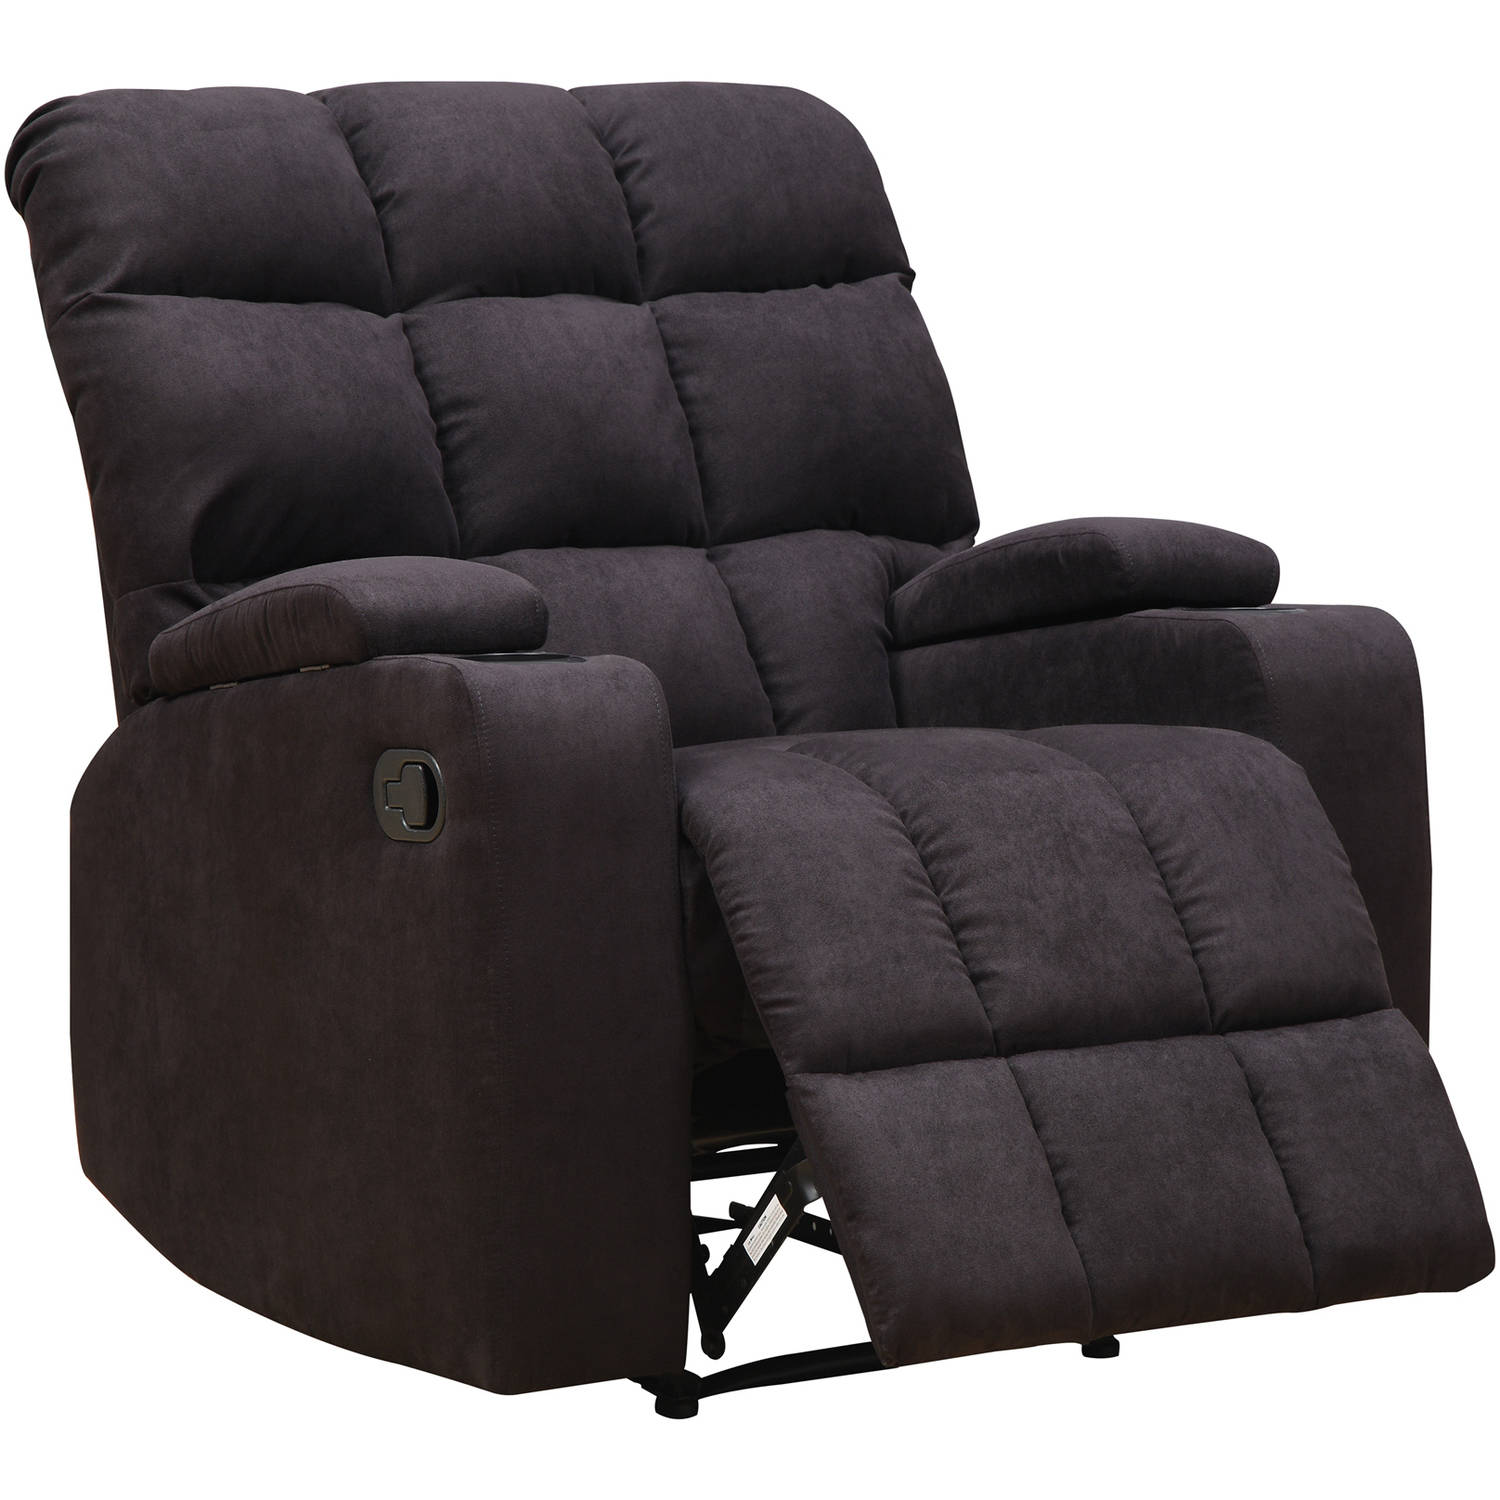 Mainstays Tyler Wall Hugger Storage Arm Recliner Chair Multiple